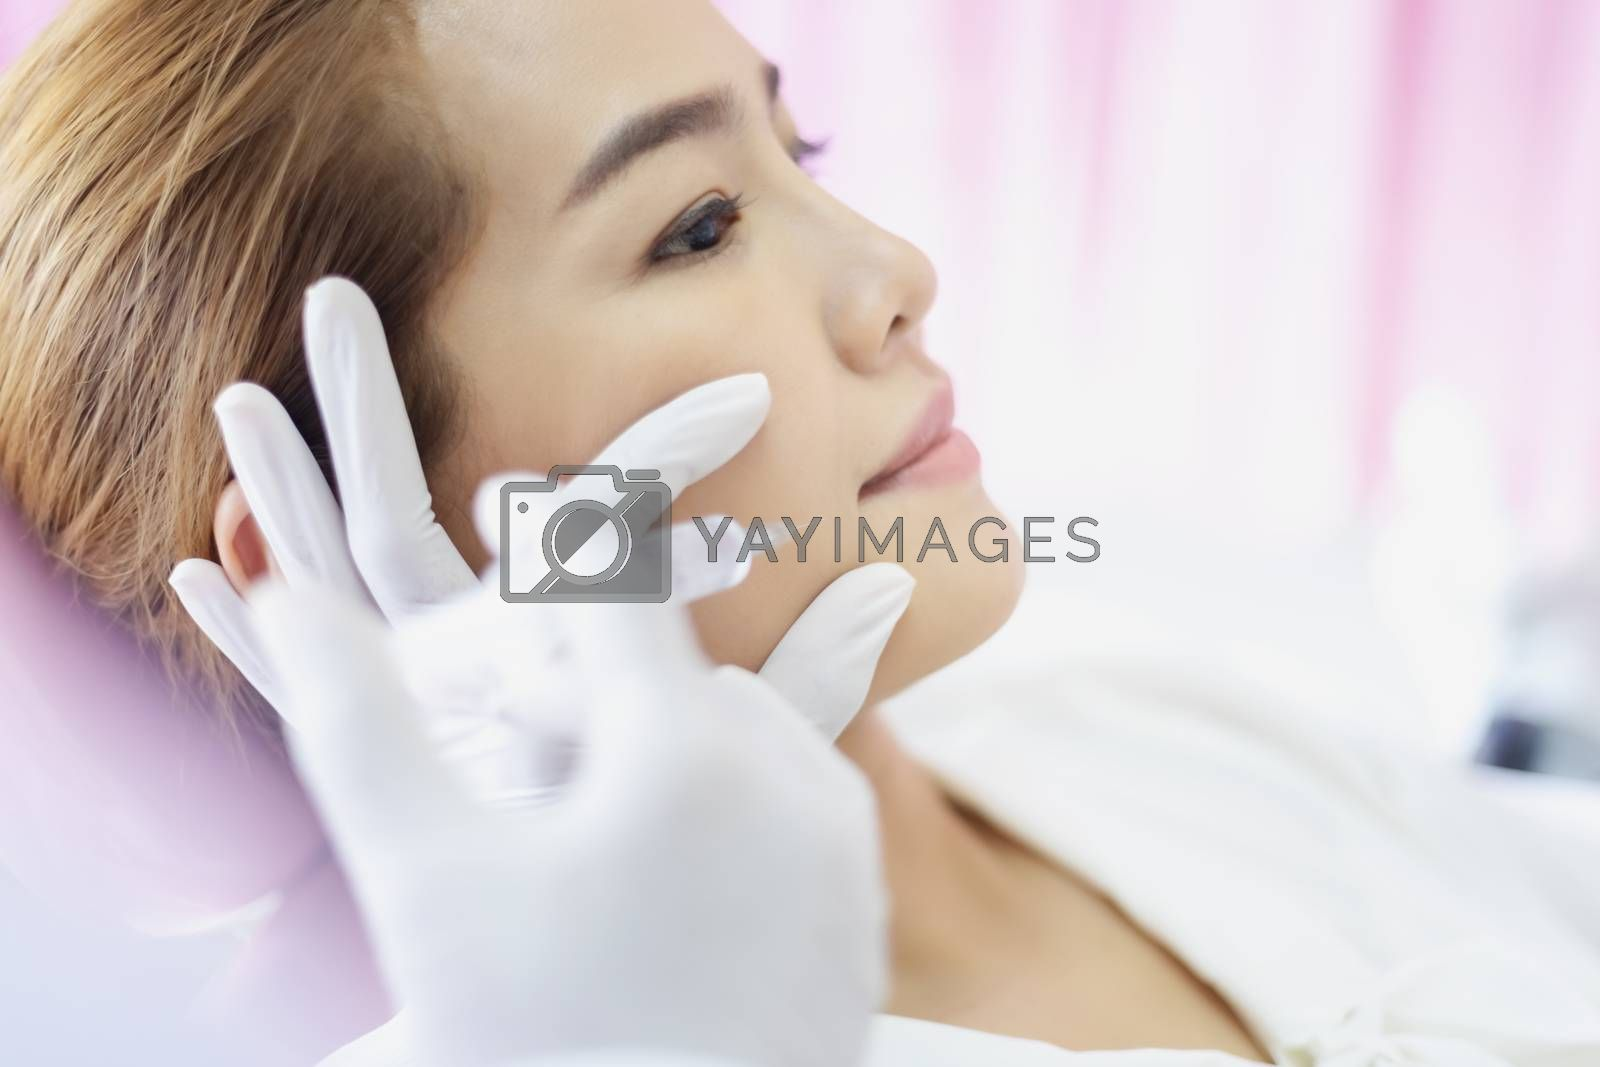 Beautiful women are injecting Botox in the face. The medical specialist is holding a syringe and injecting it on her forehead.